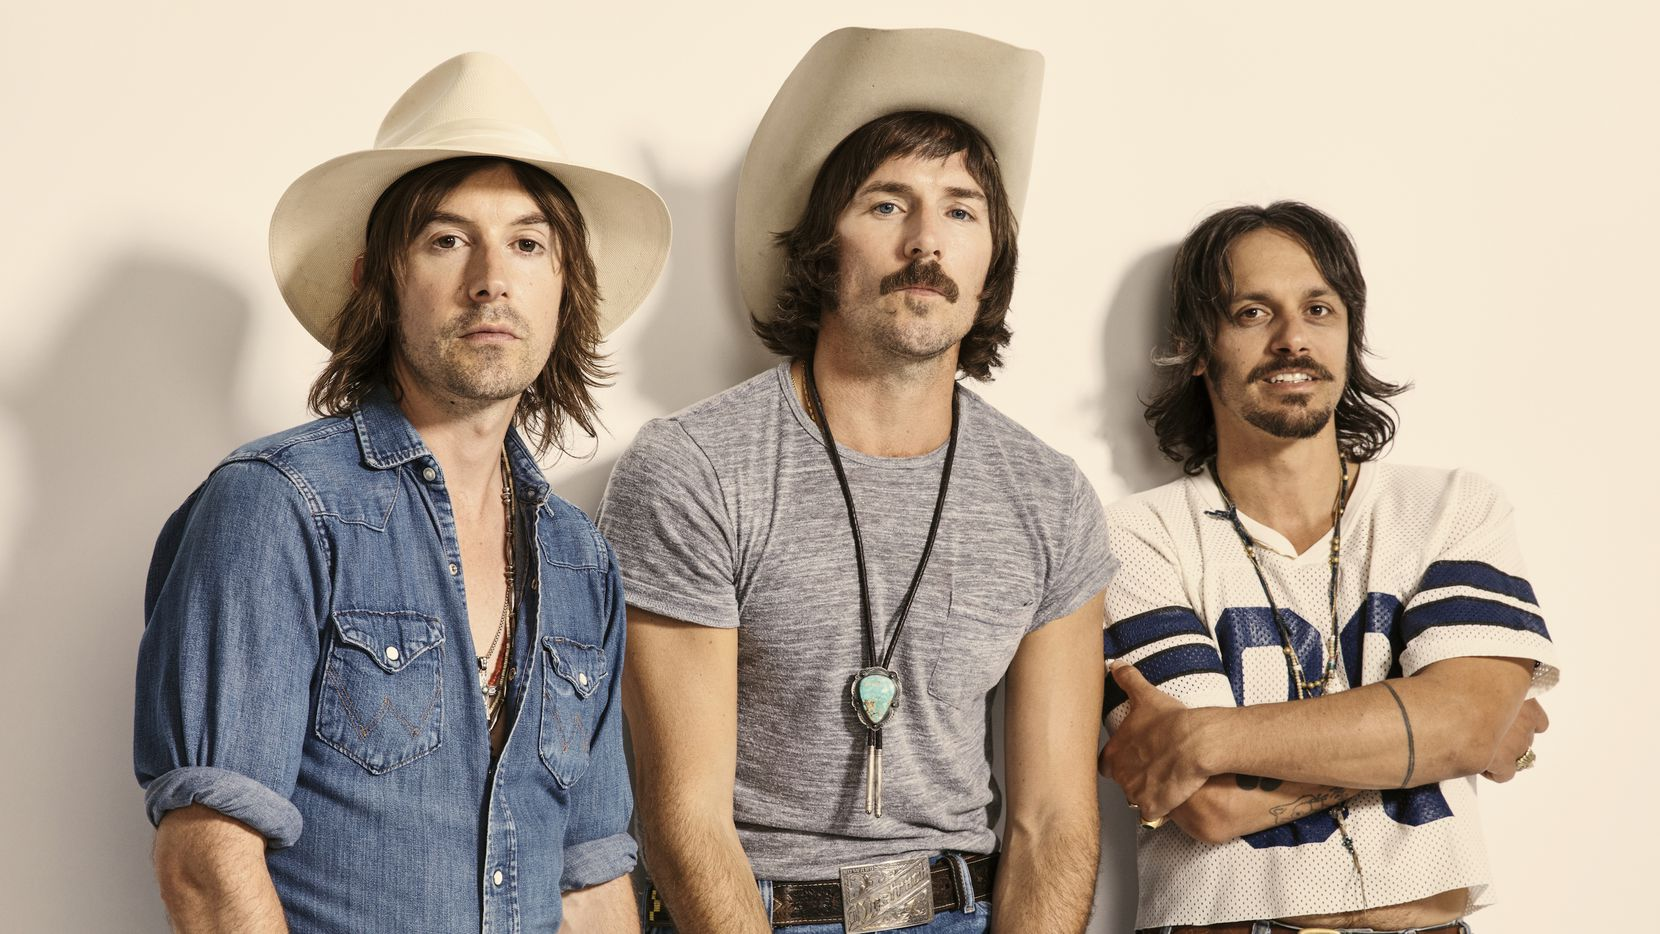 Country band Midland is comprised of (from left) Jess Carson, Mark Wasatch and Cameron Duddy.